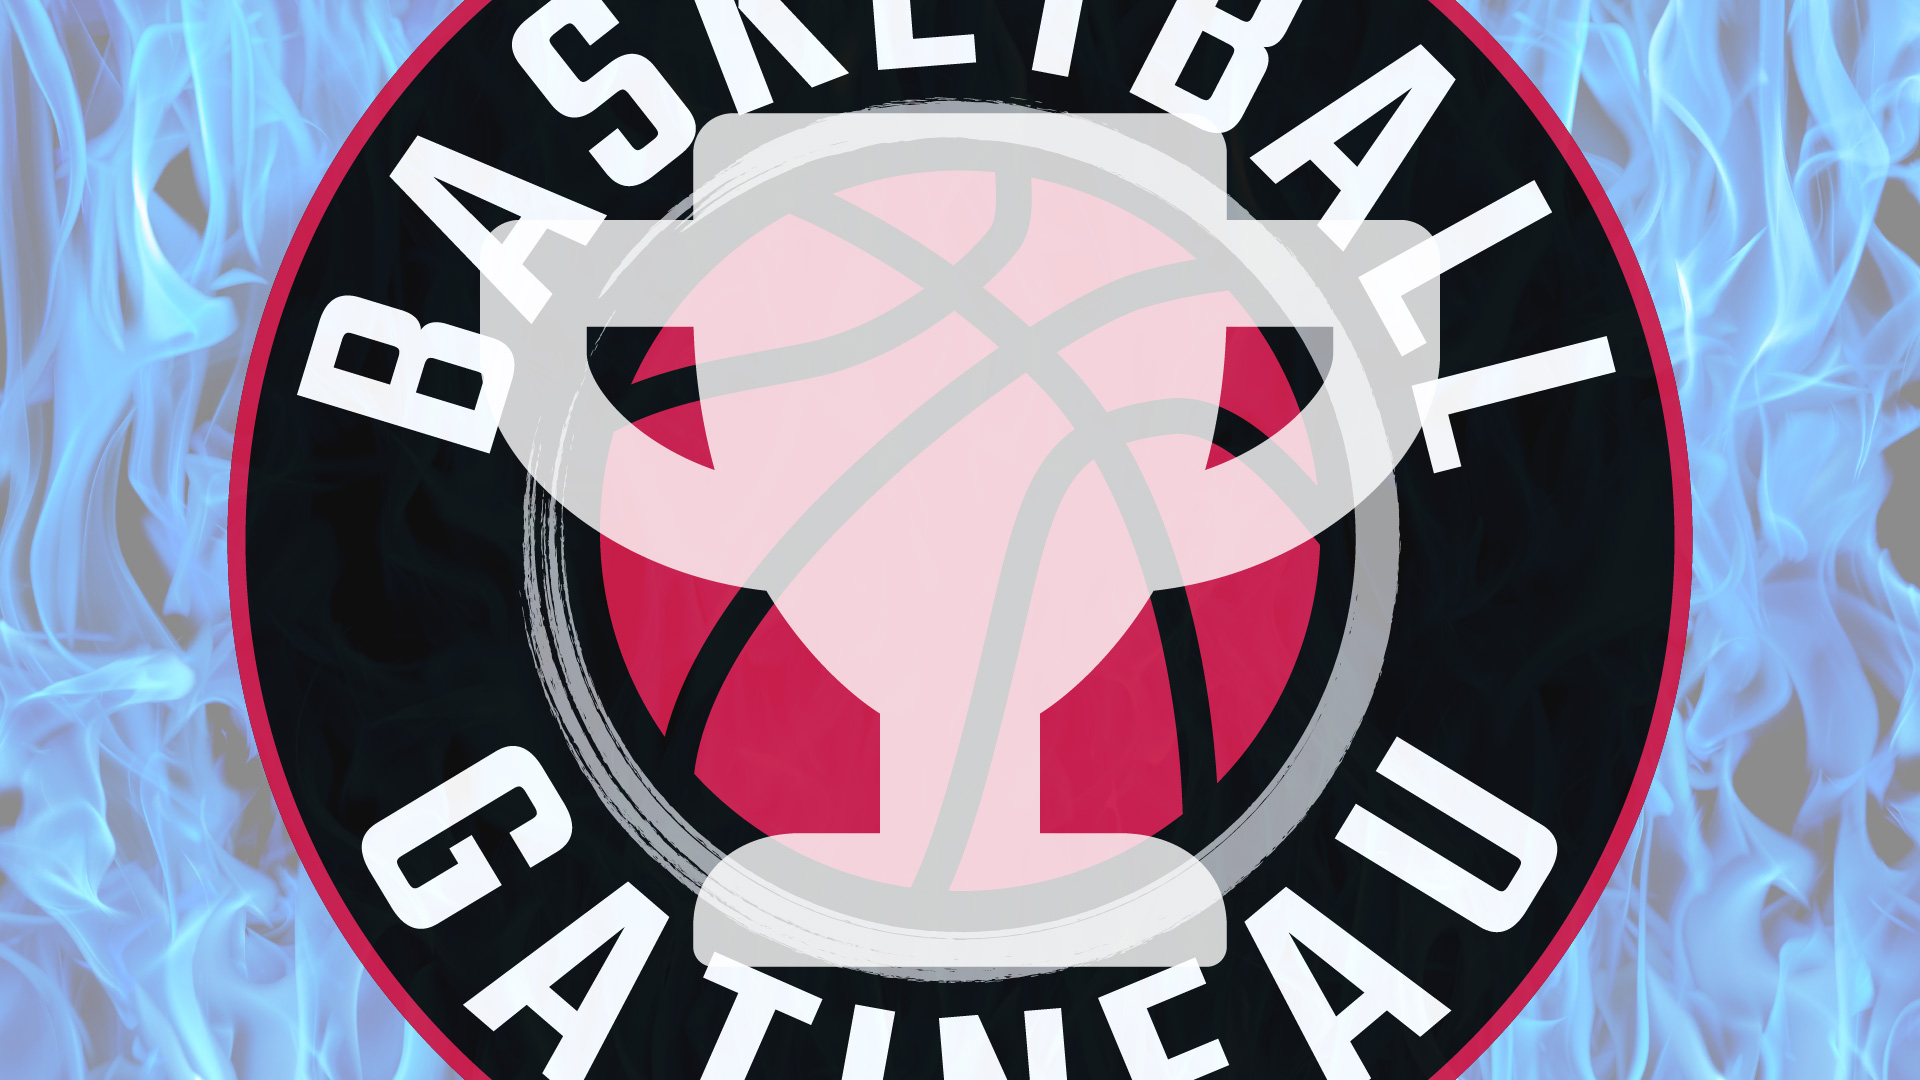 Programme compétitif - Association de basketball de Gatineau